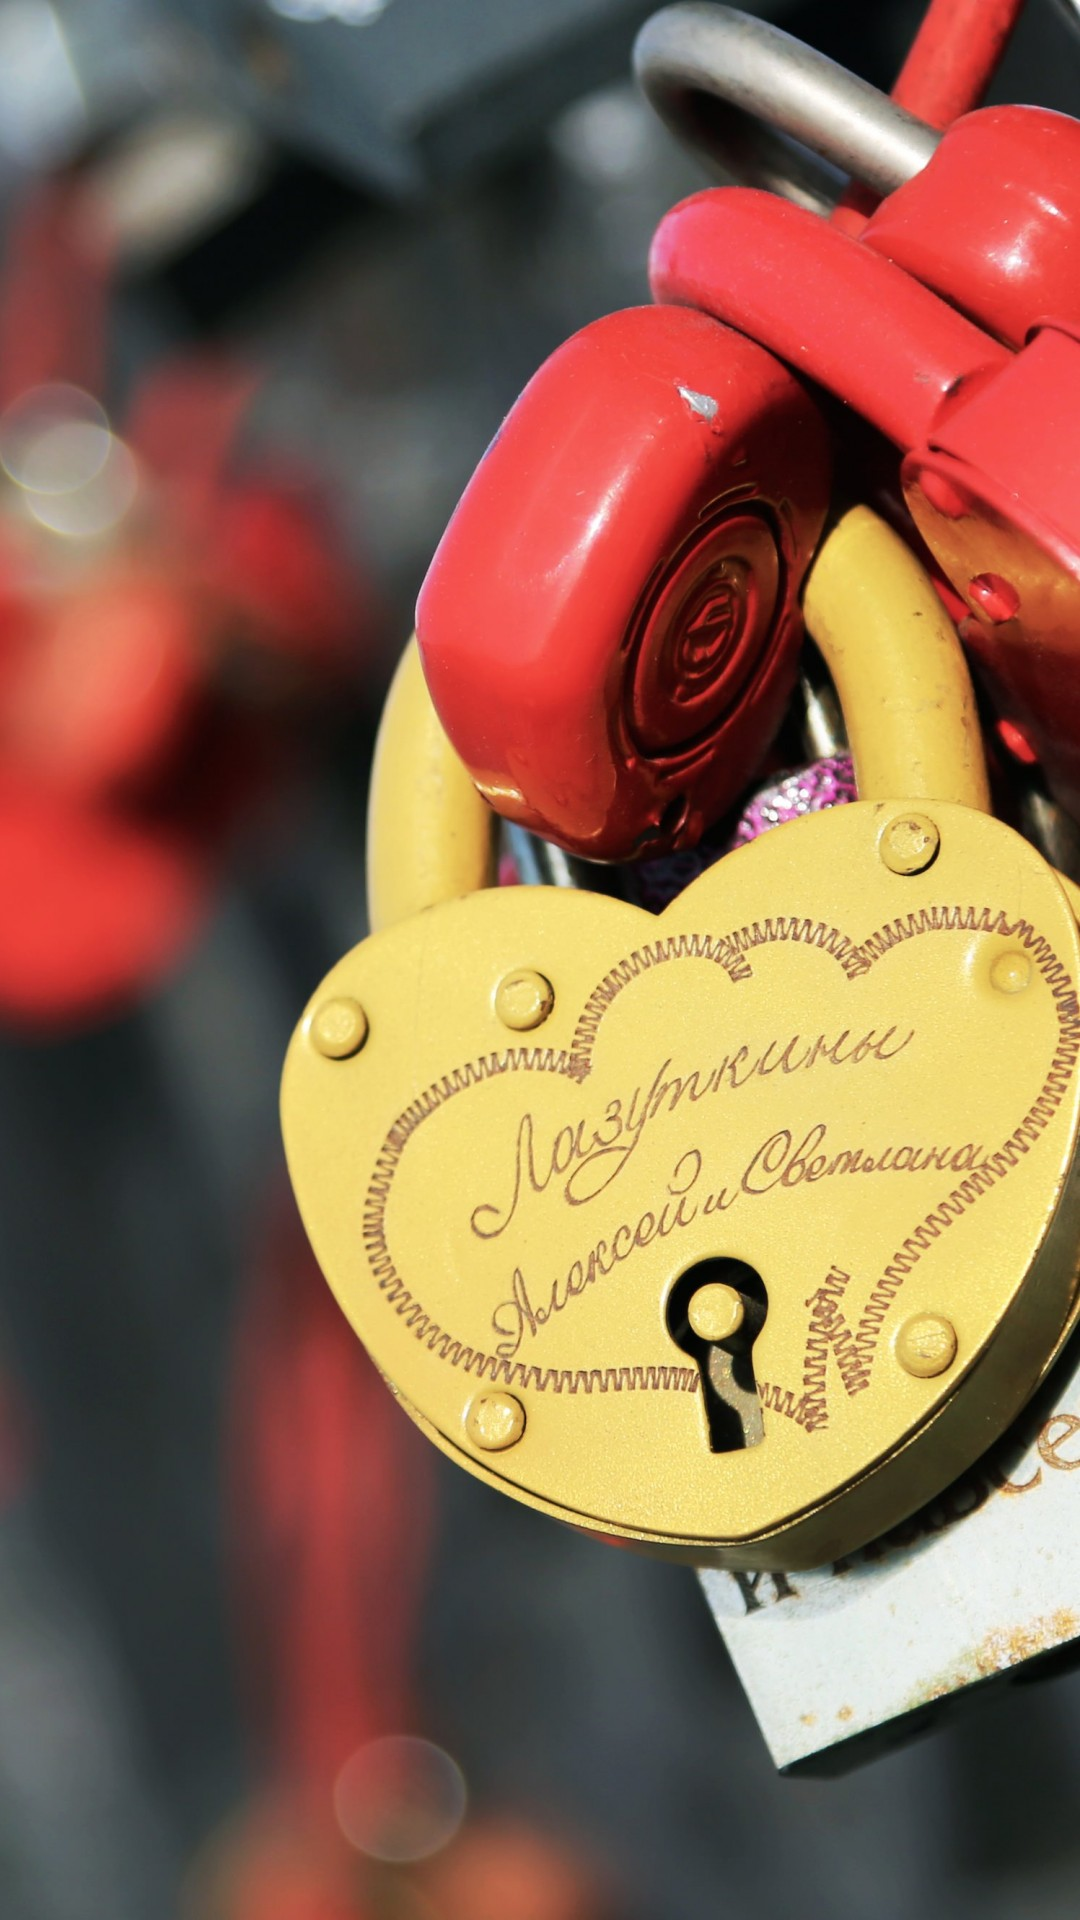 Love Lock Wallpaper for Google Nexus 5